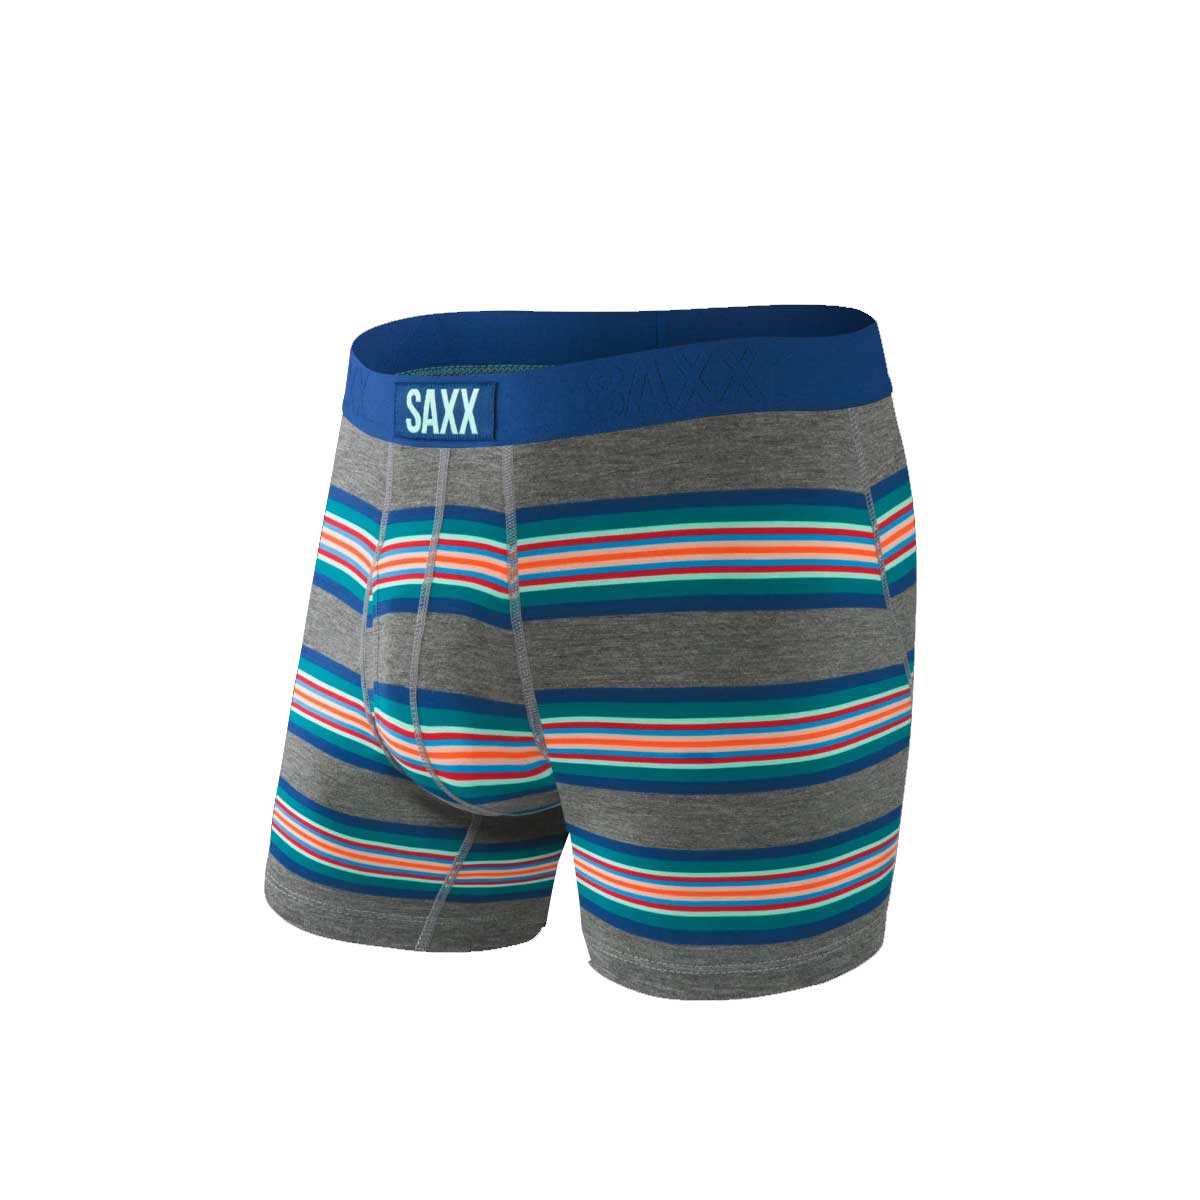 Saxx Underwear Ultra Boxer Brief - Grey Banner Stripe